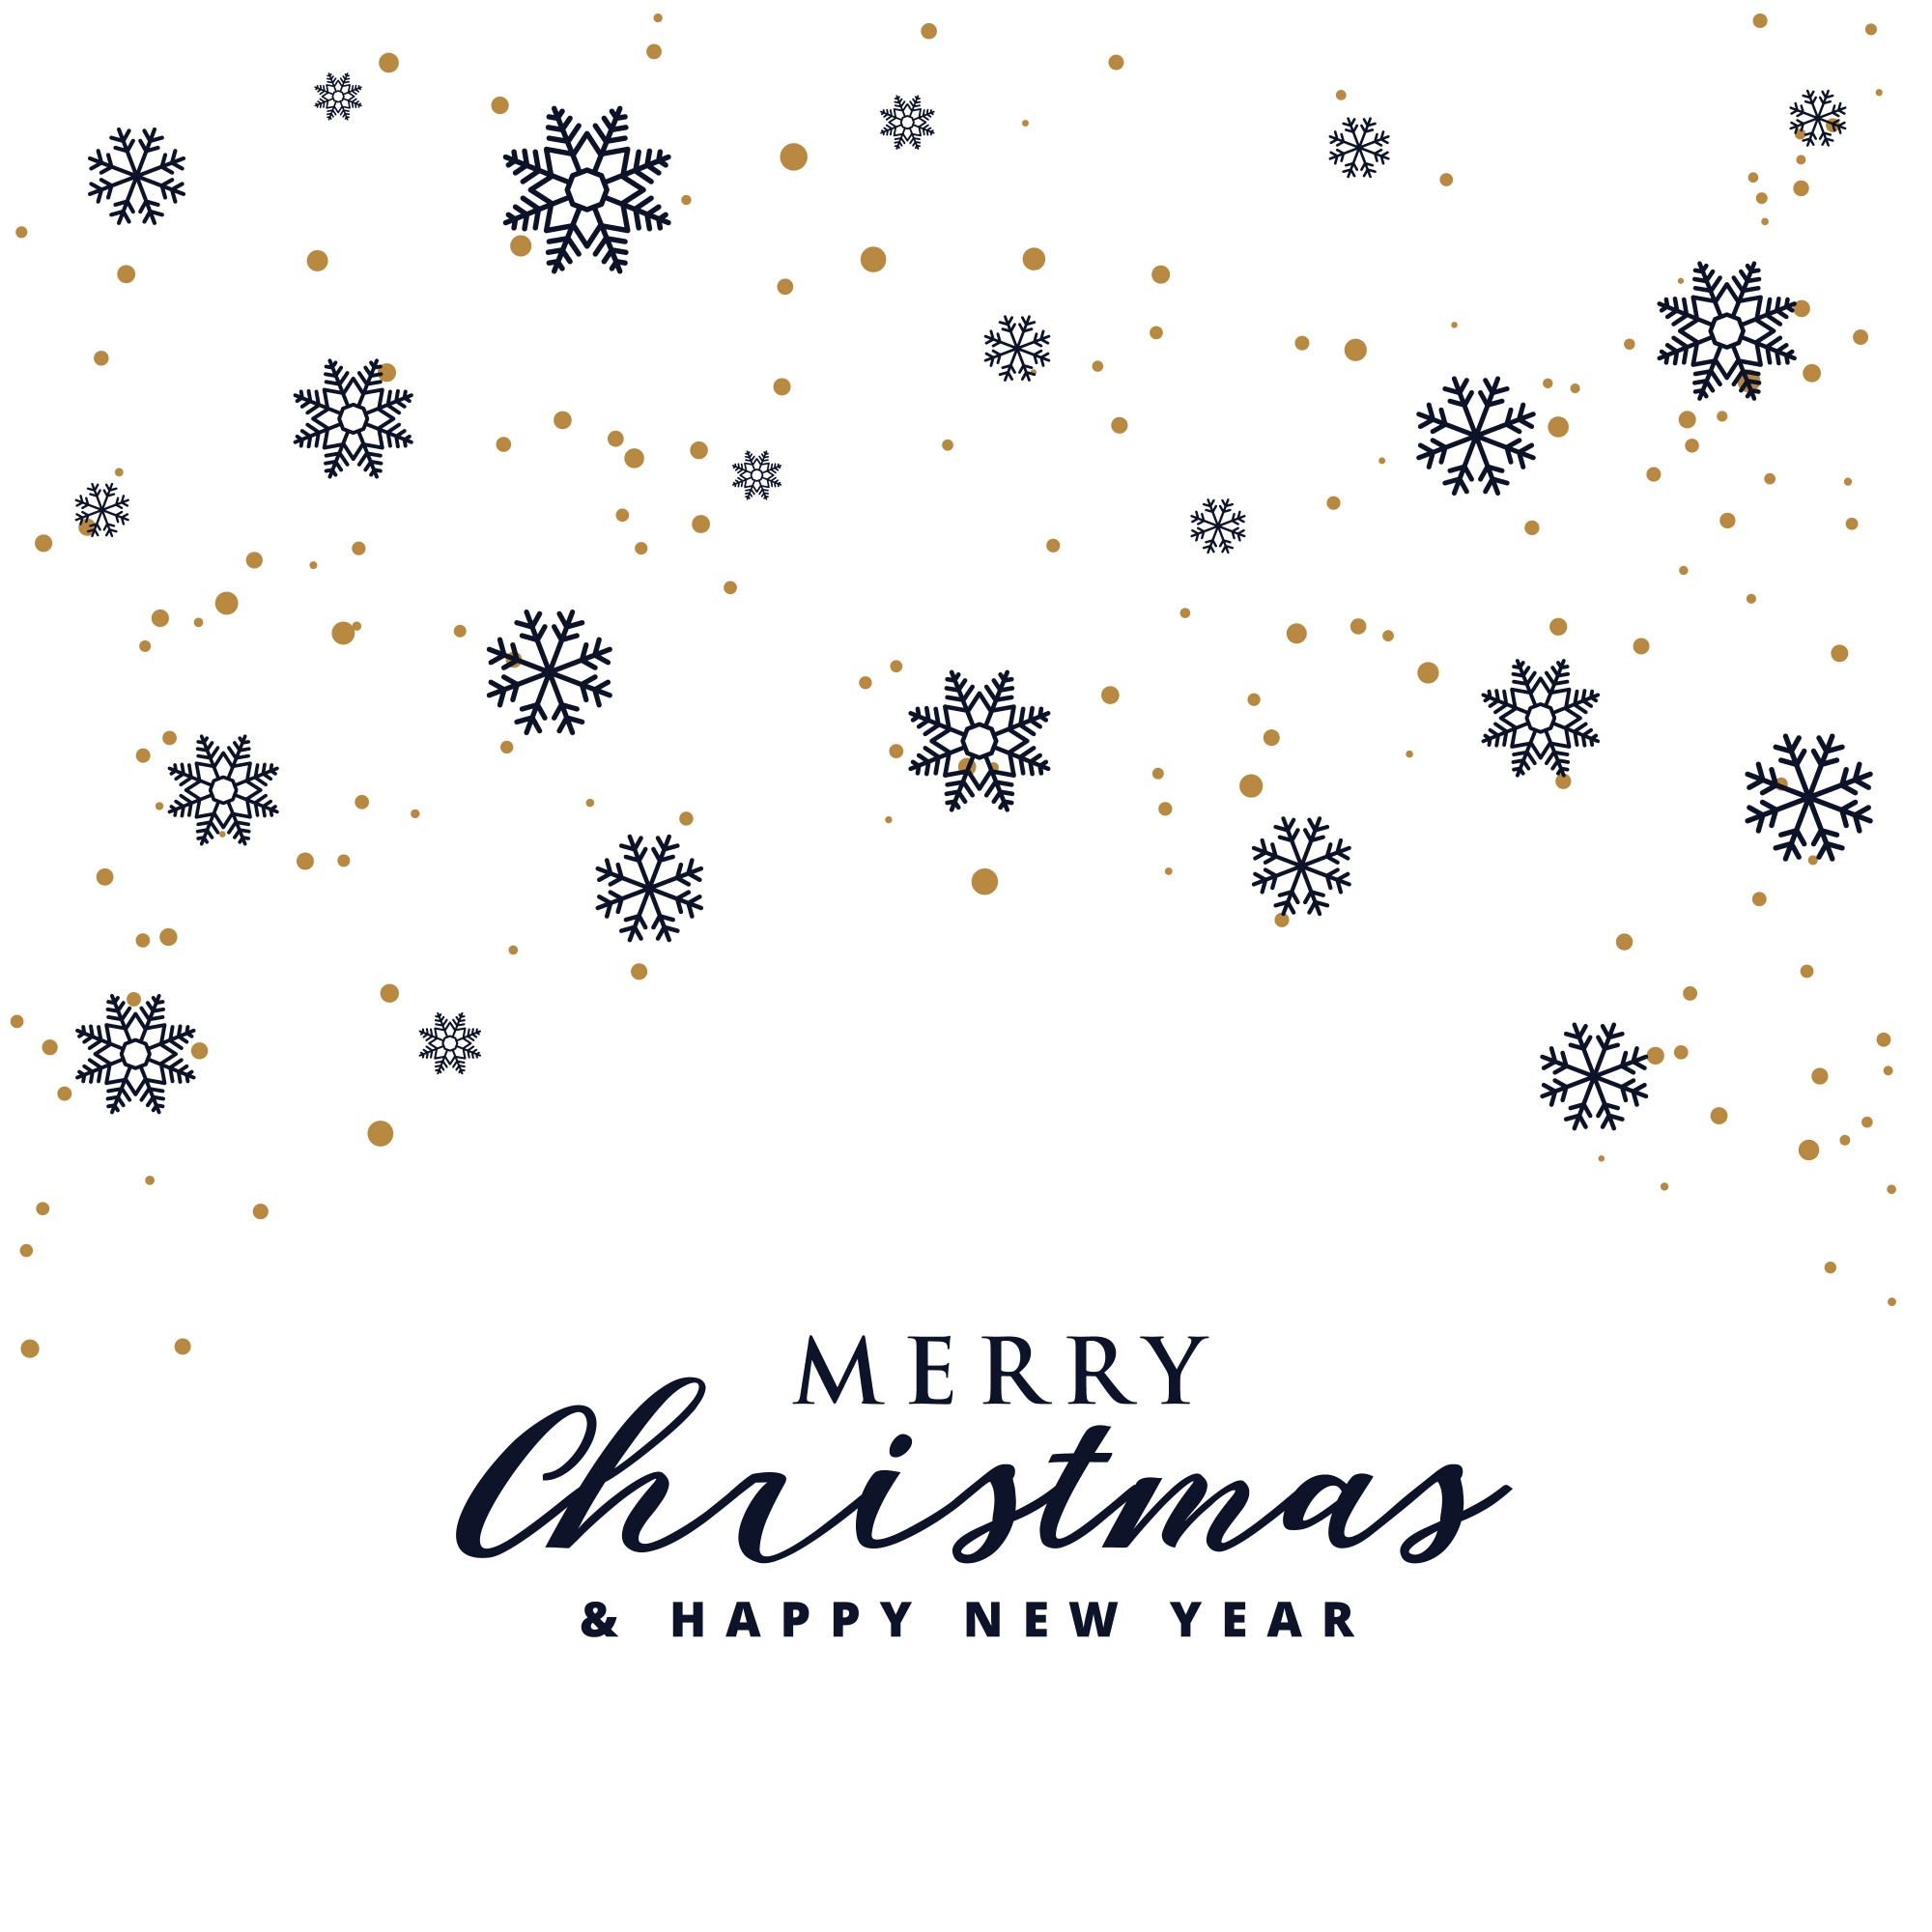 Elegant merry christmas festival background with snowflakes